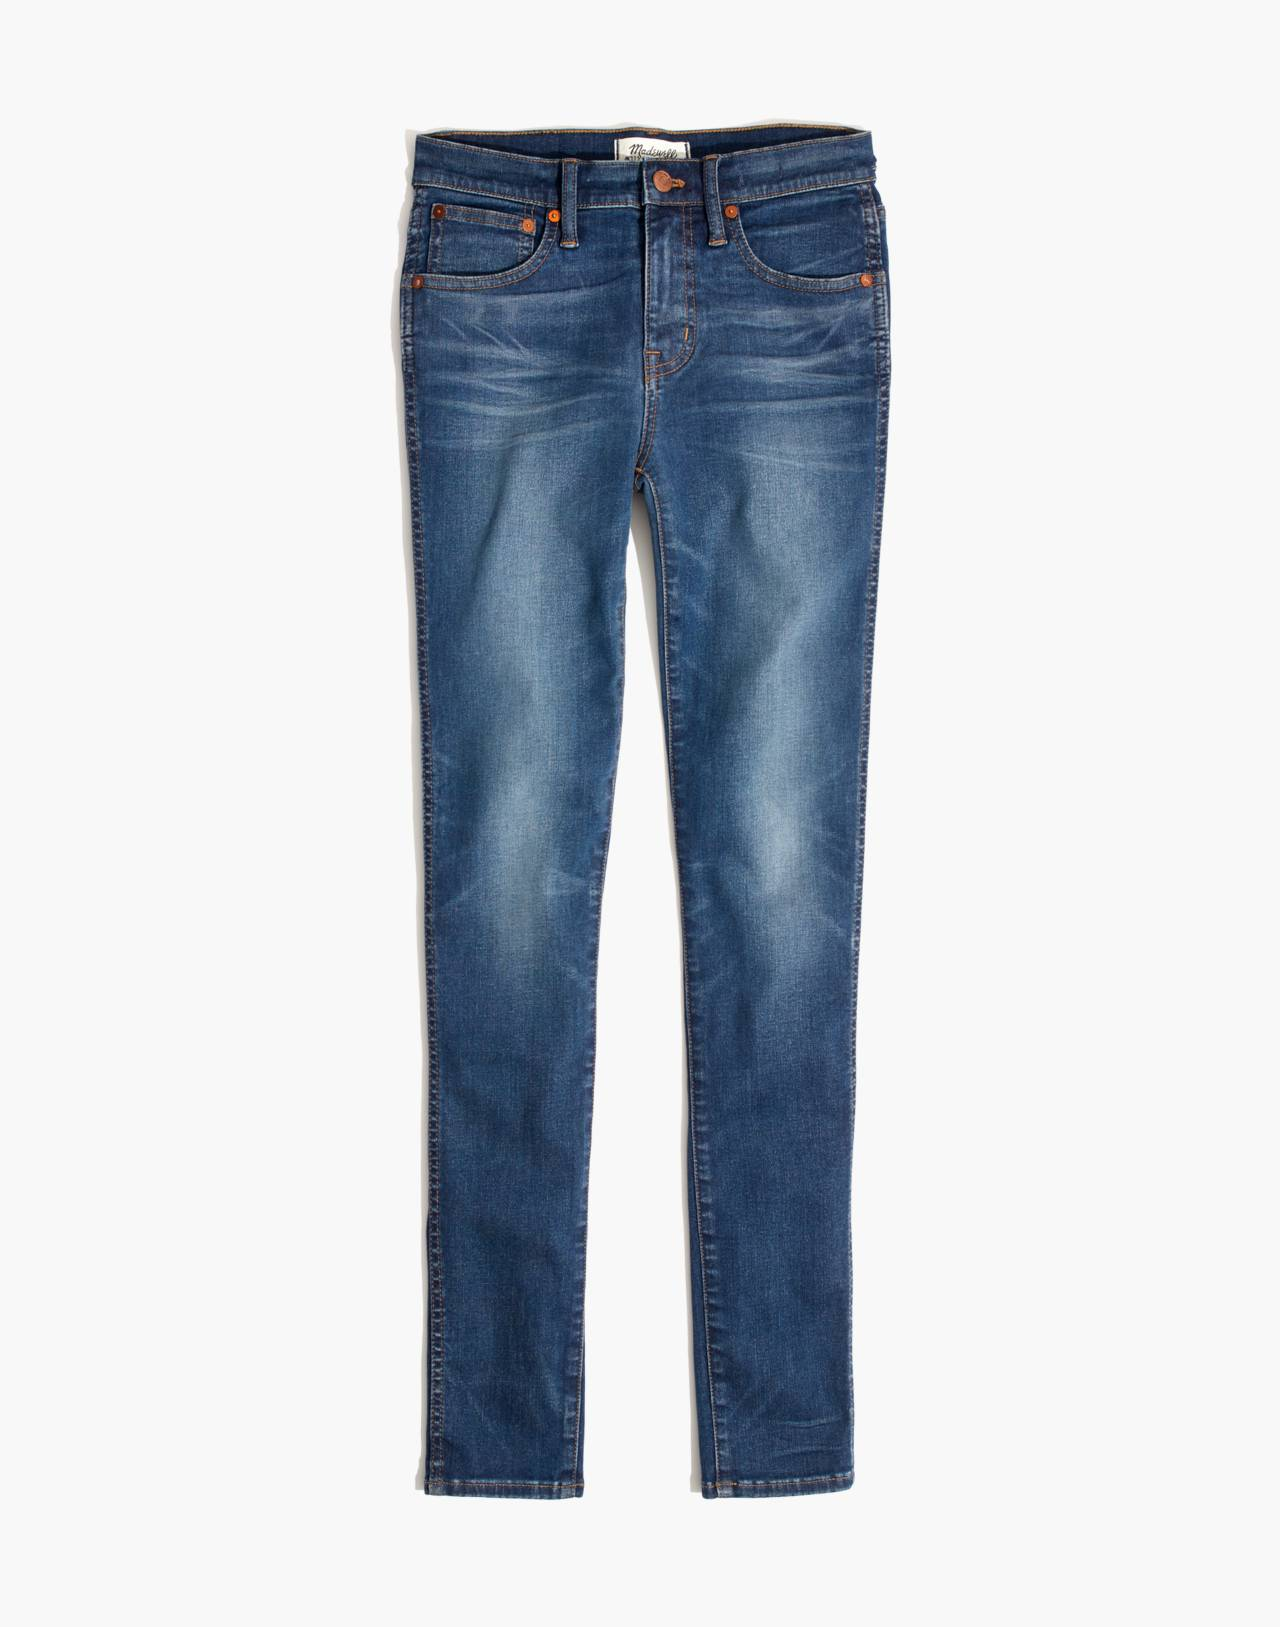 """Petite 9"""" High-Rise Skinny Jeans in Patty Wash in patty wash image 4"""